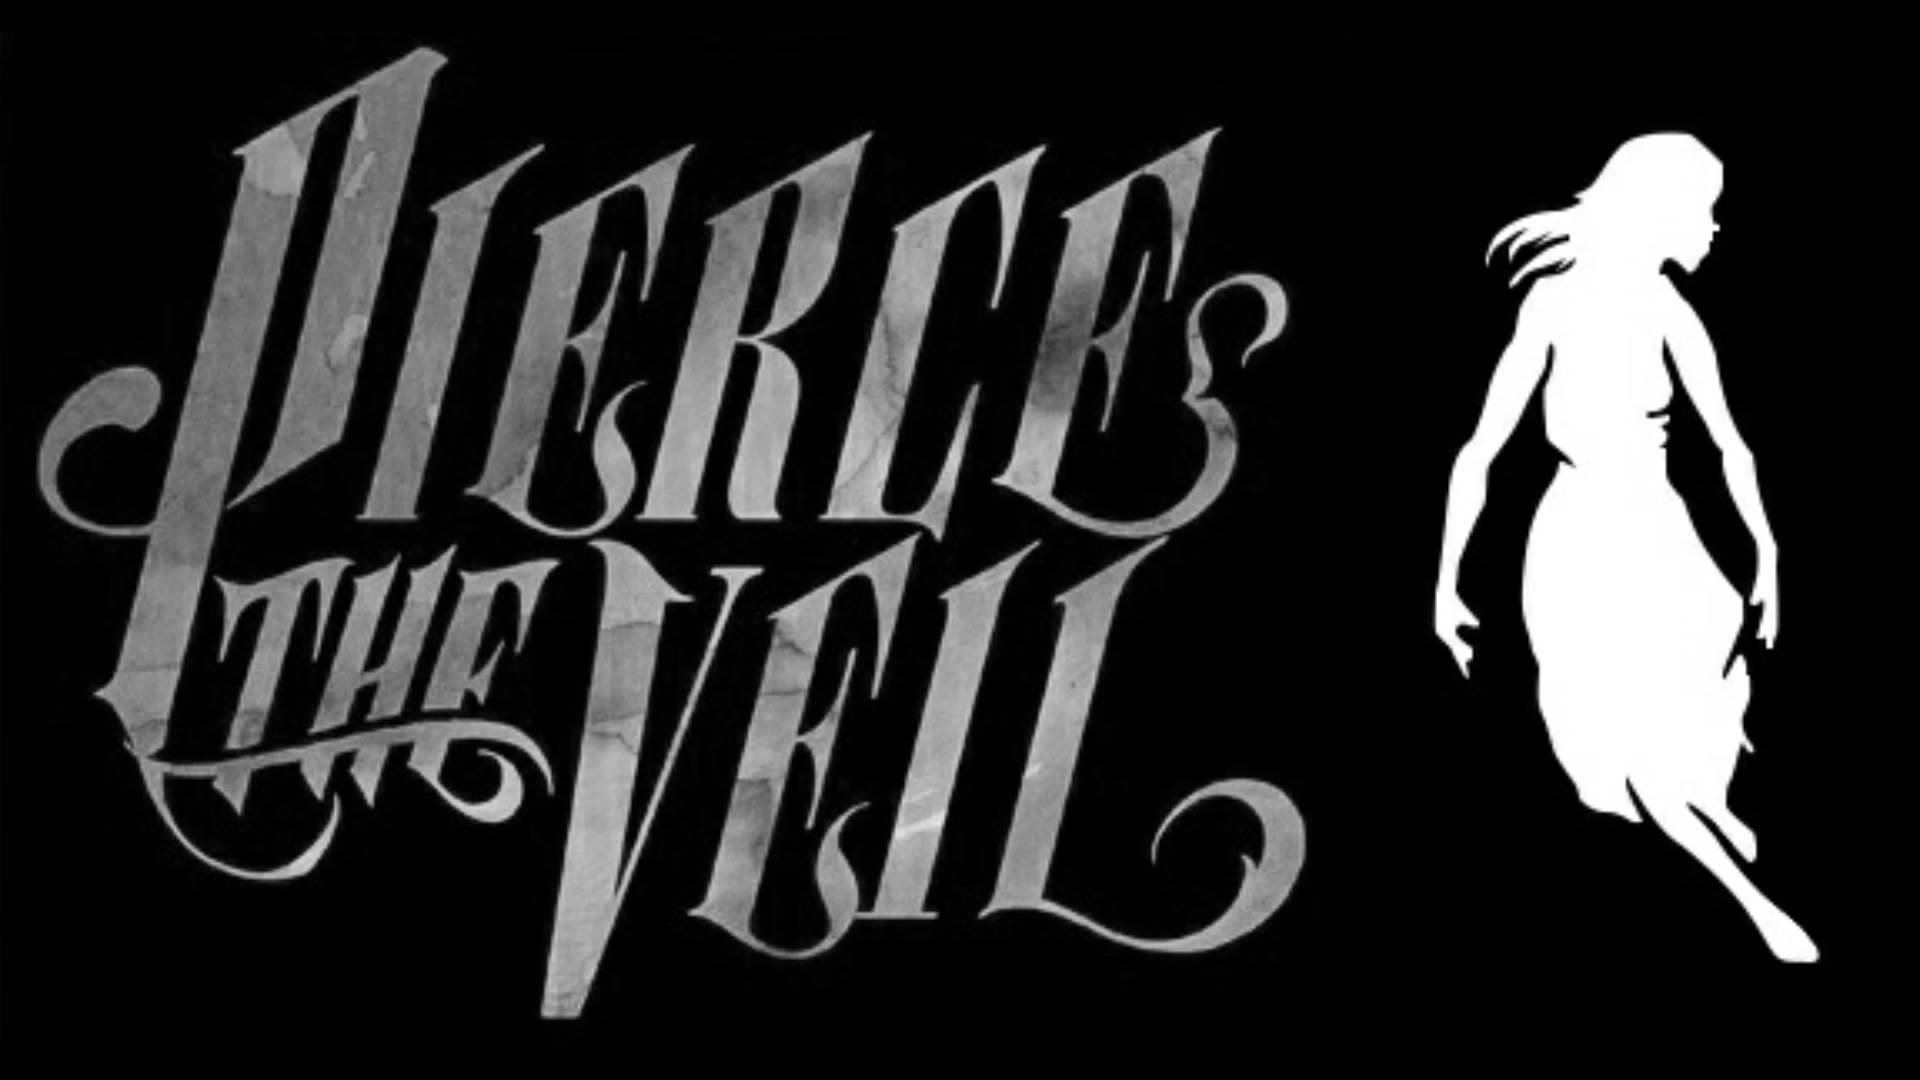 pierce the veil wallpapers - wallpaper cave